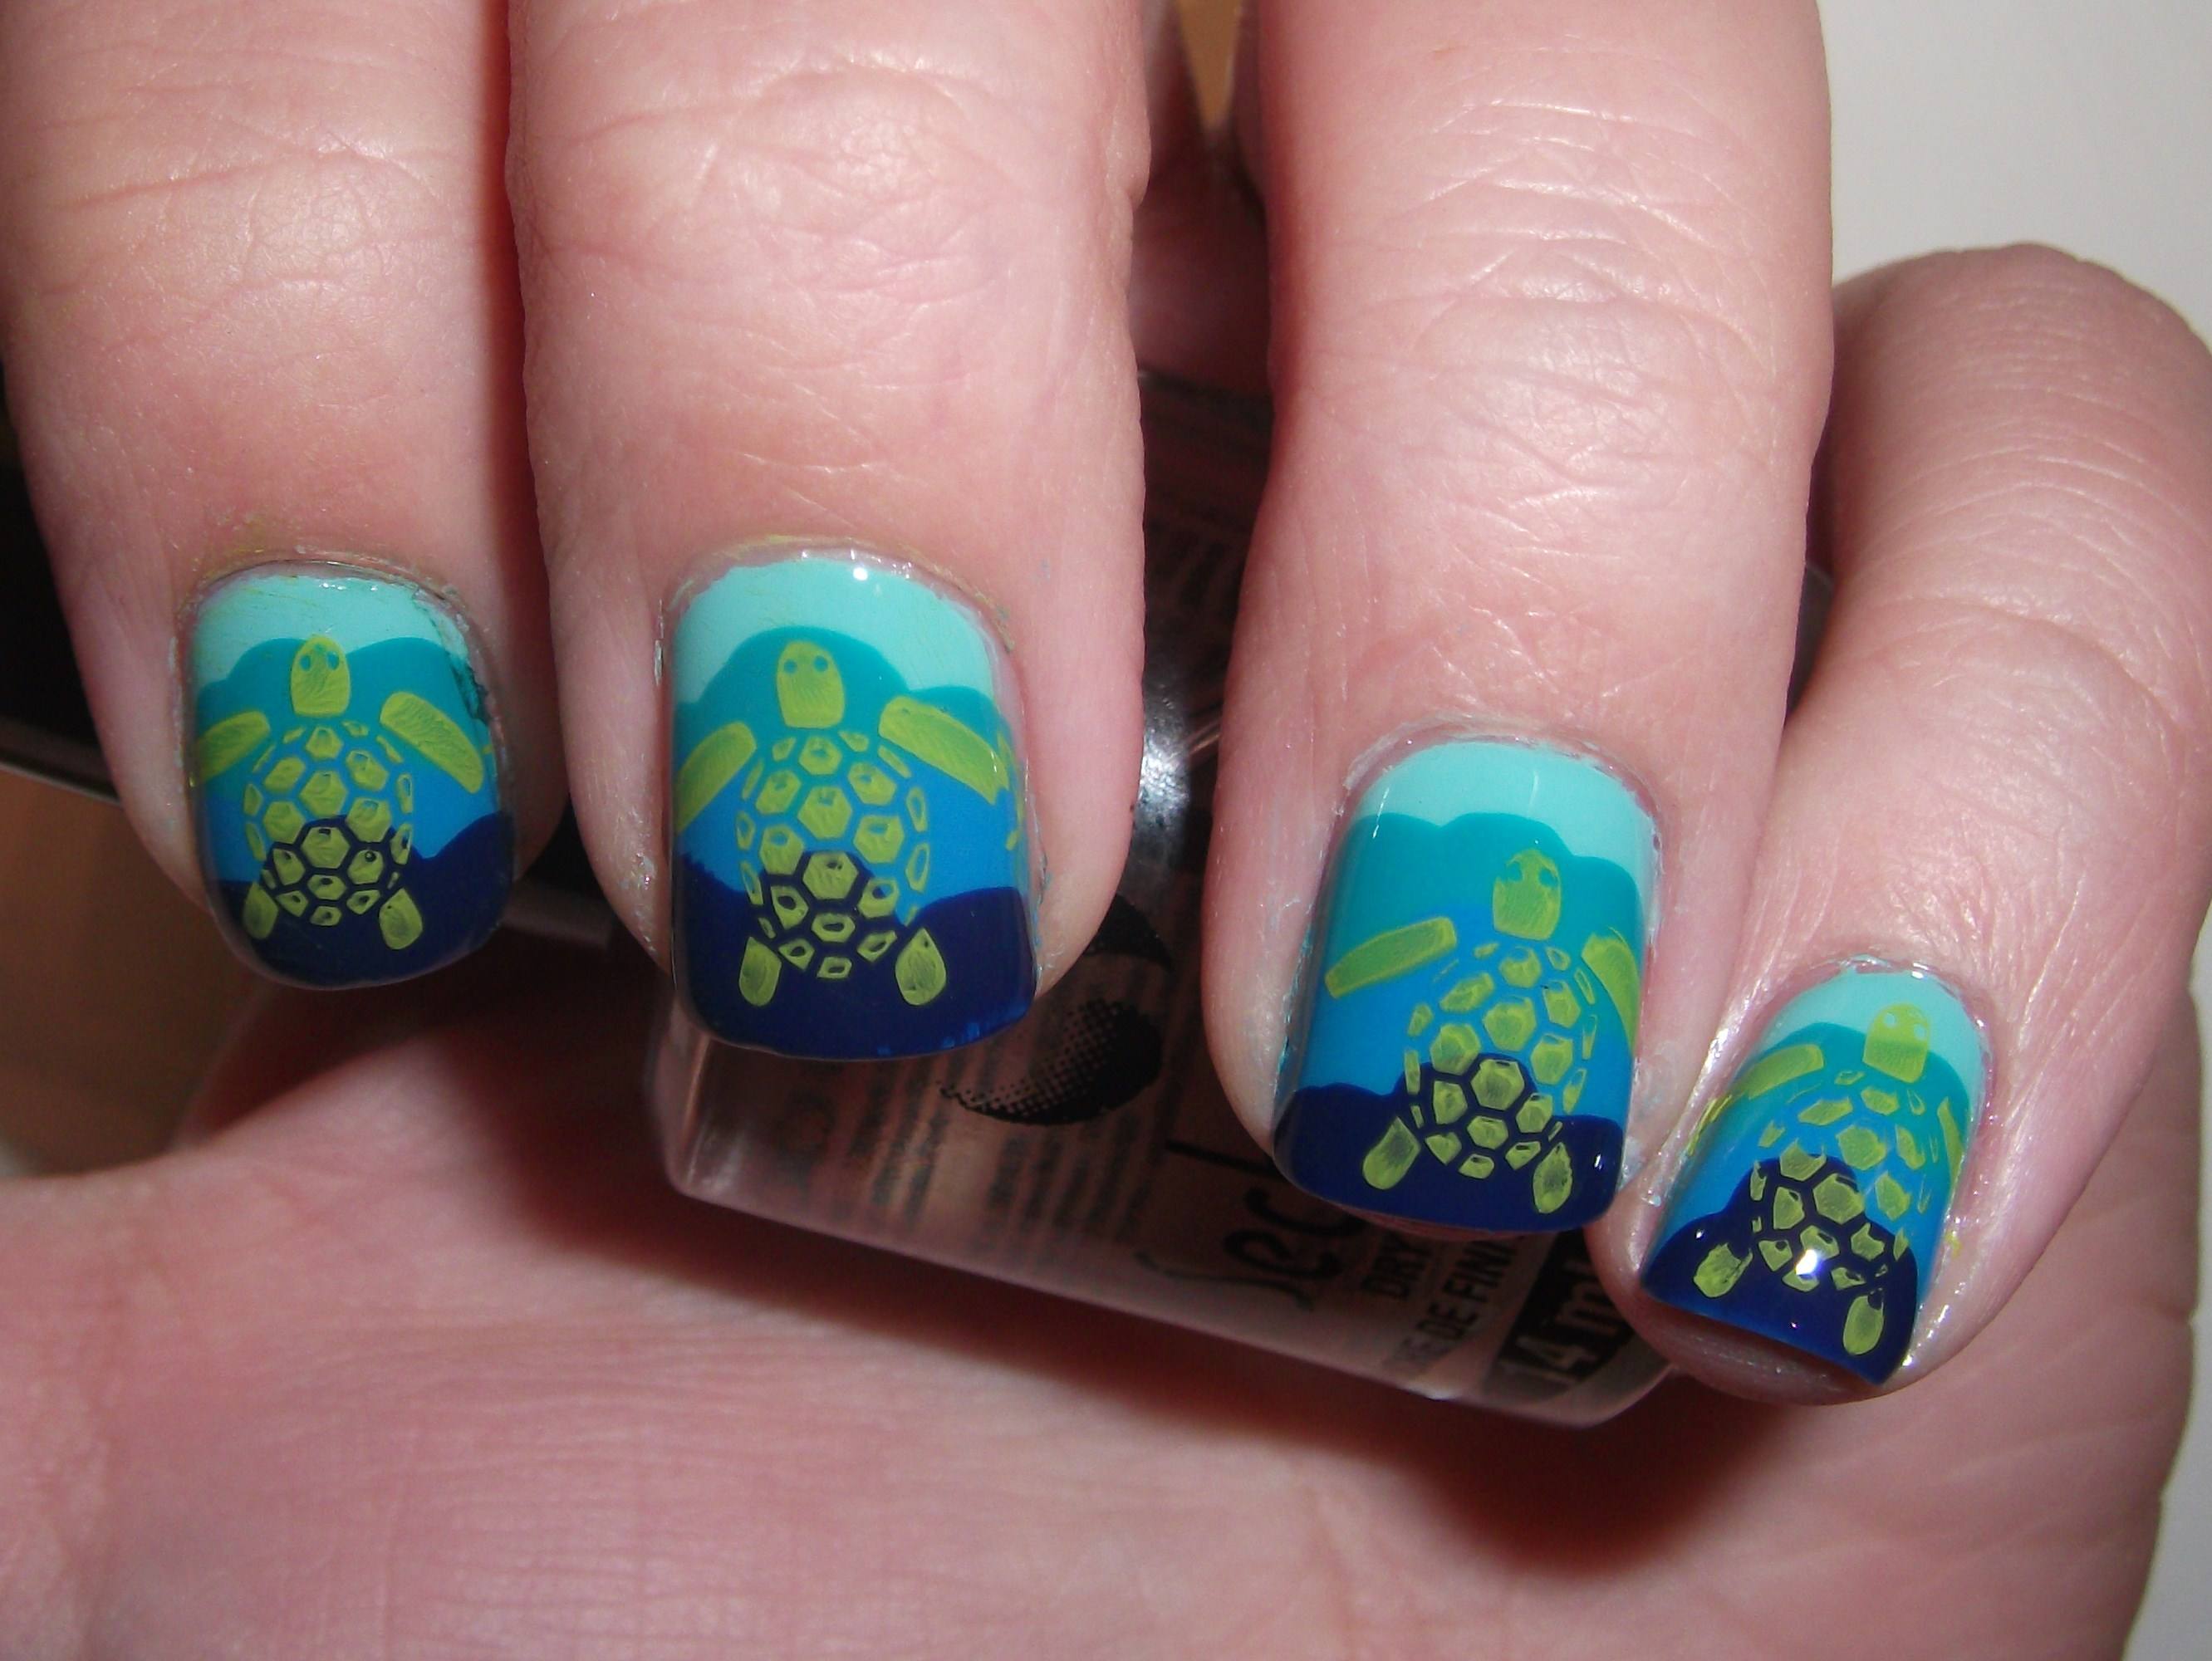 Sea turtle nails polish me please how to get these nails prinsesfo Gallery